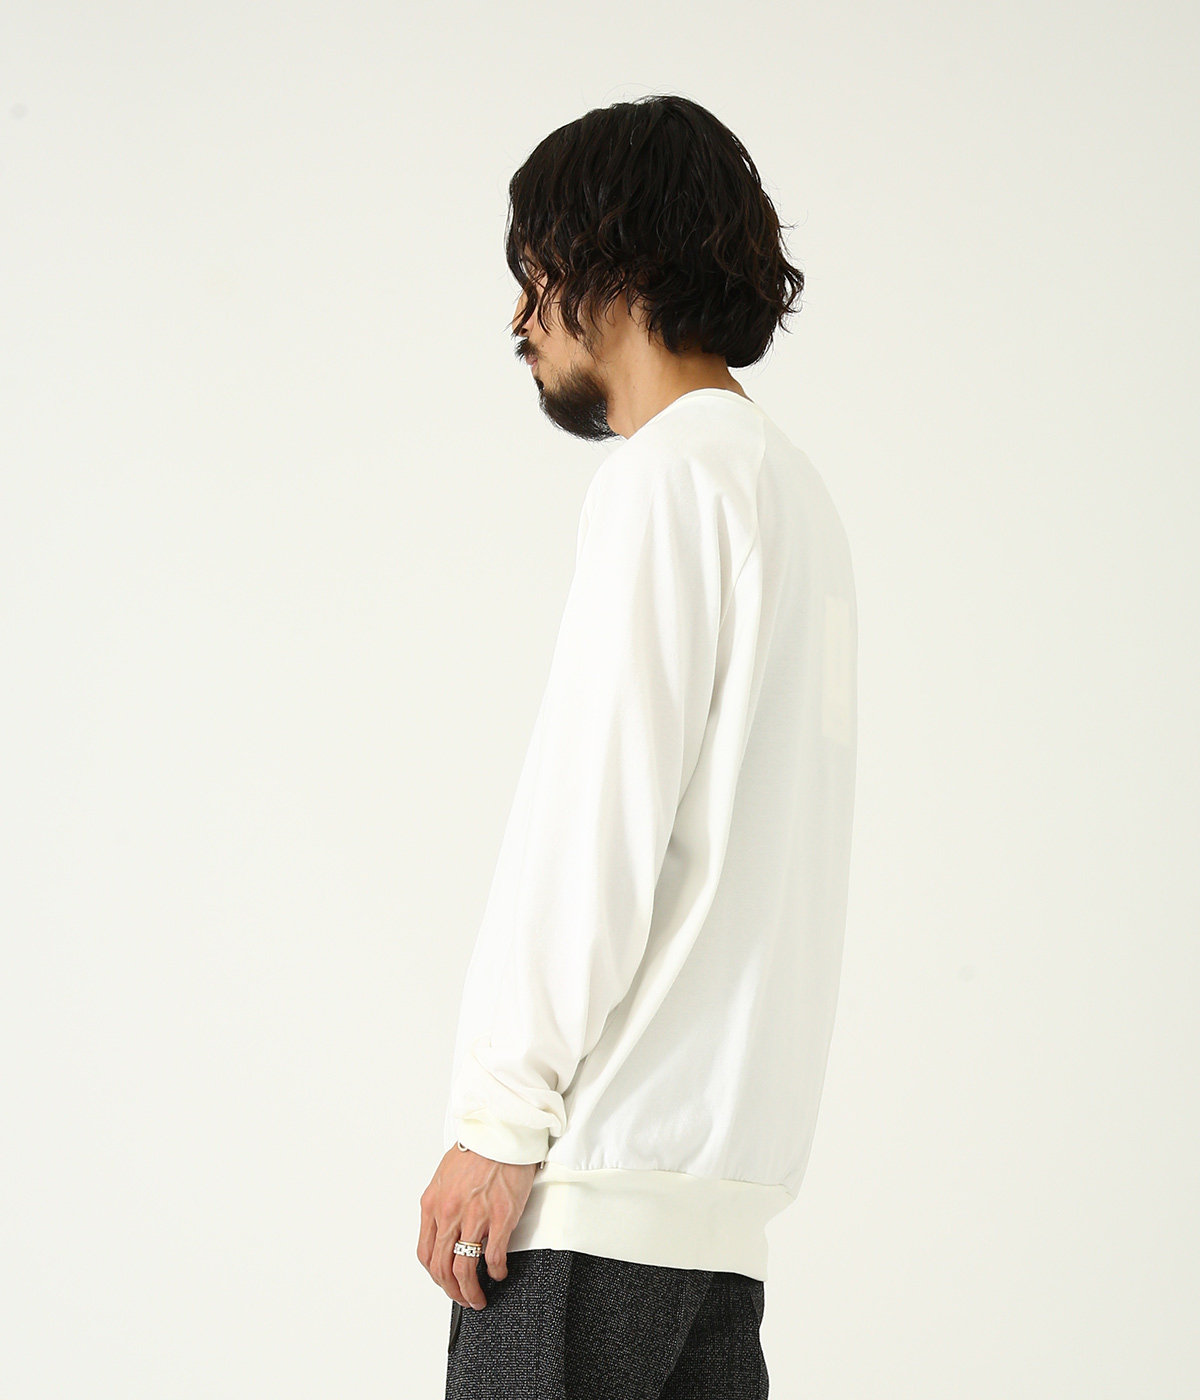 CREW NECK - 30/2 combed cotton knit brushed -